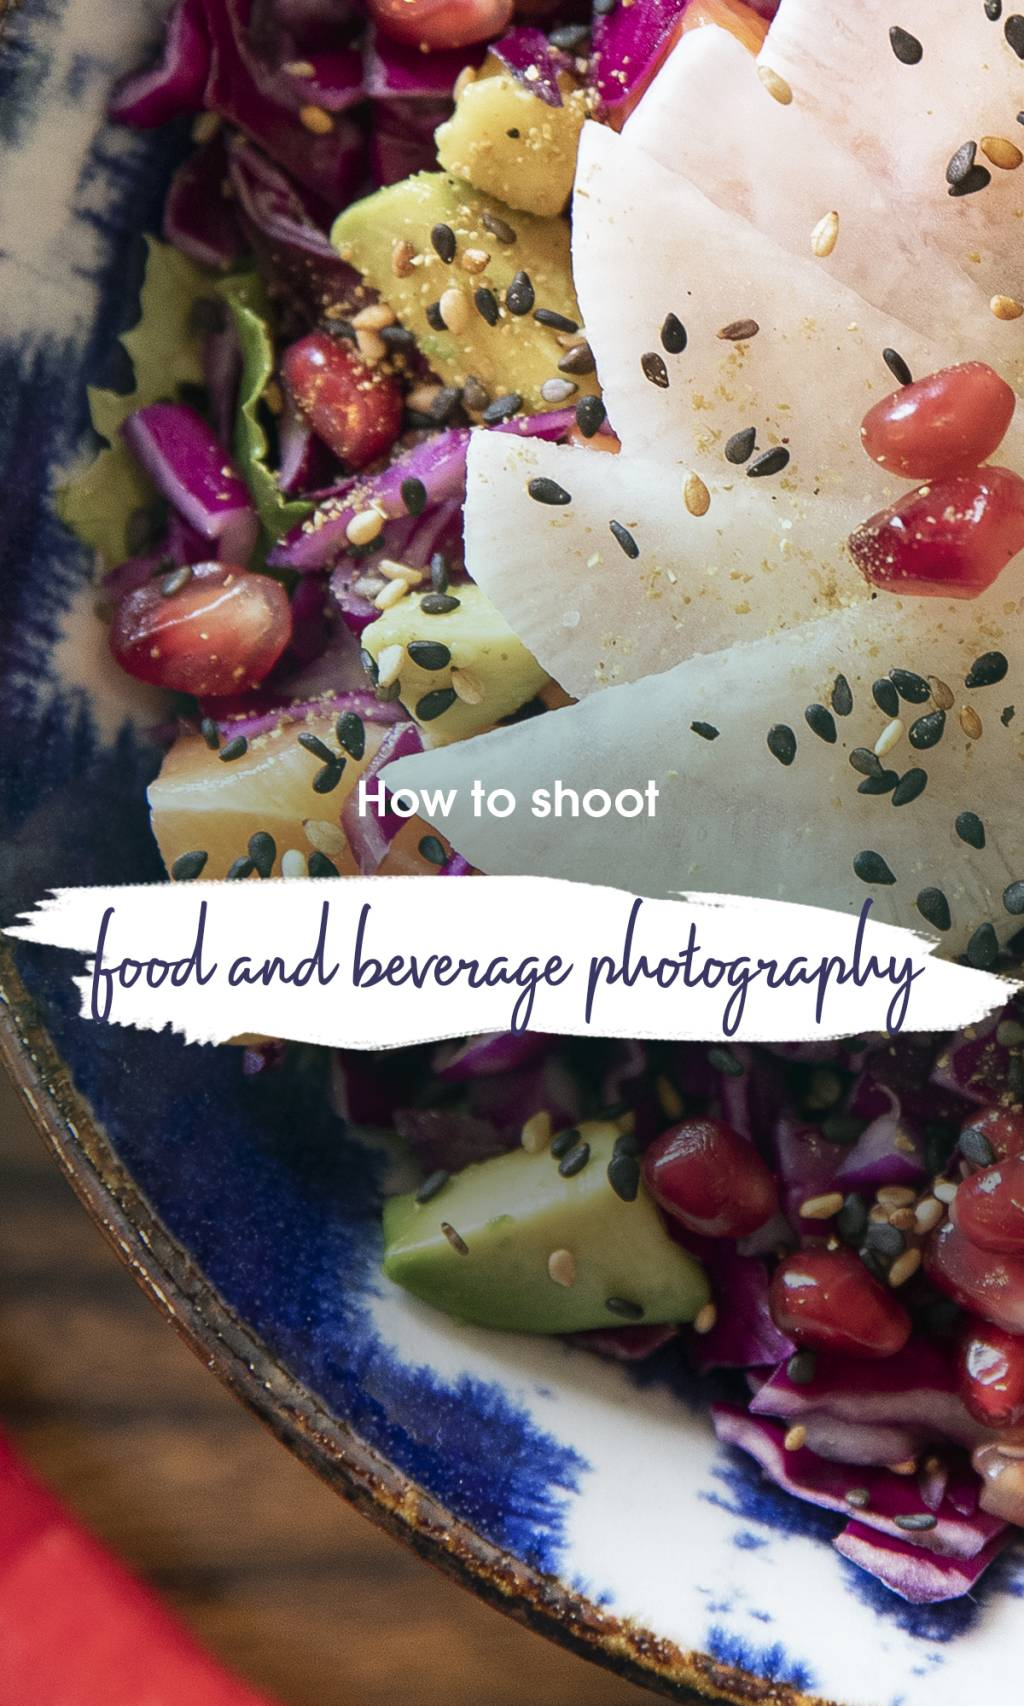 How to shoot food and beverage photography?